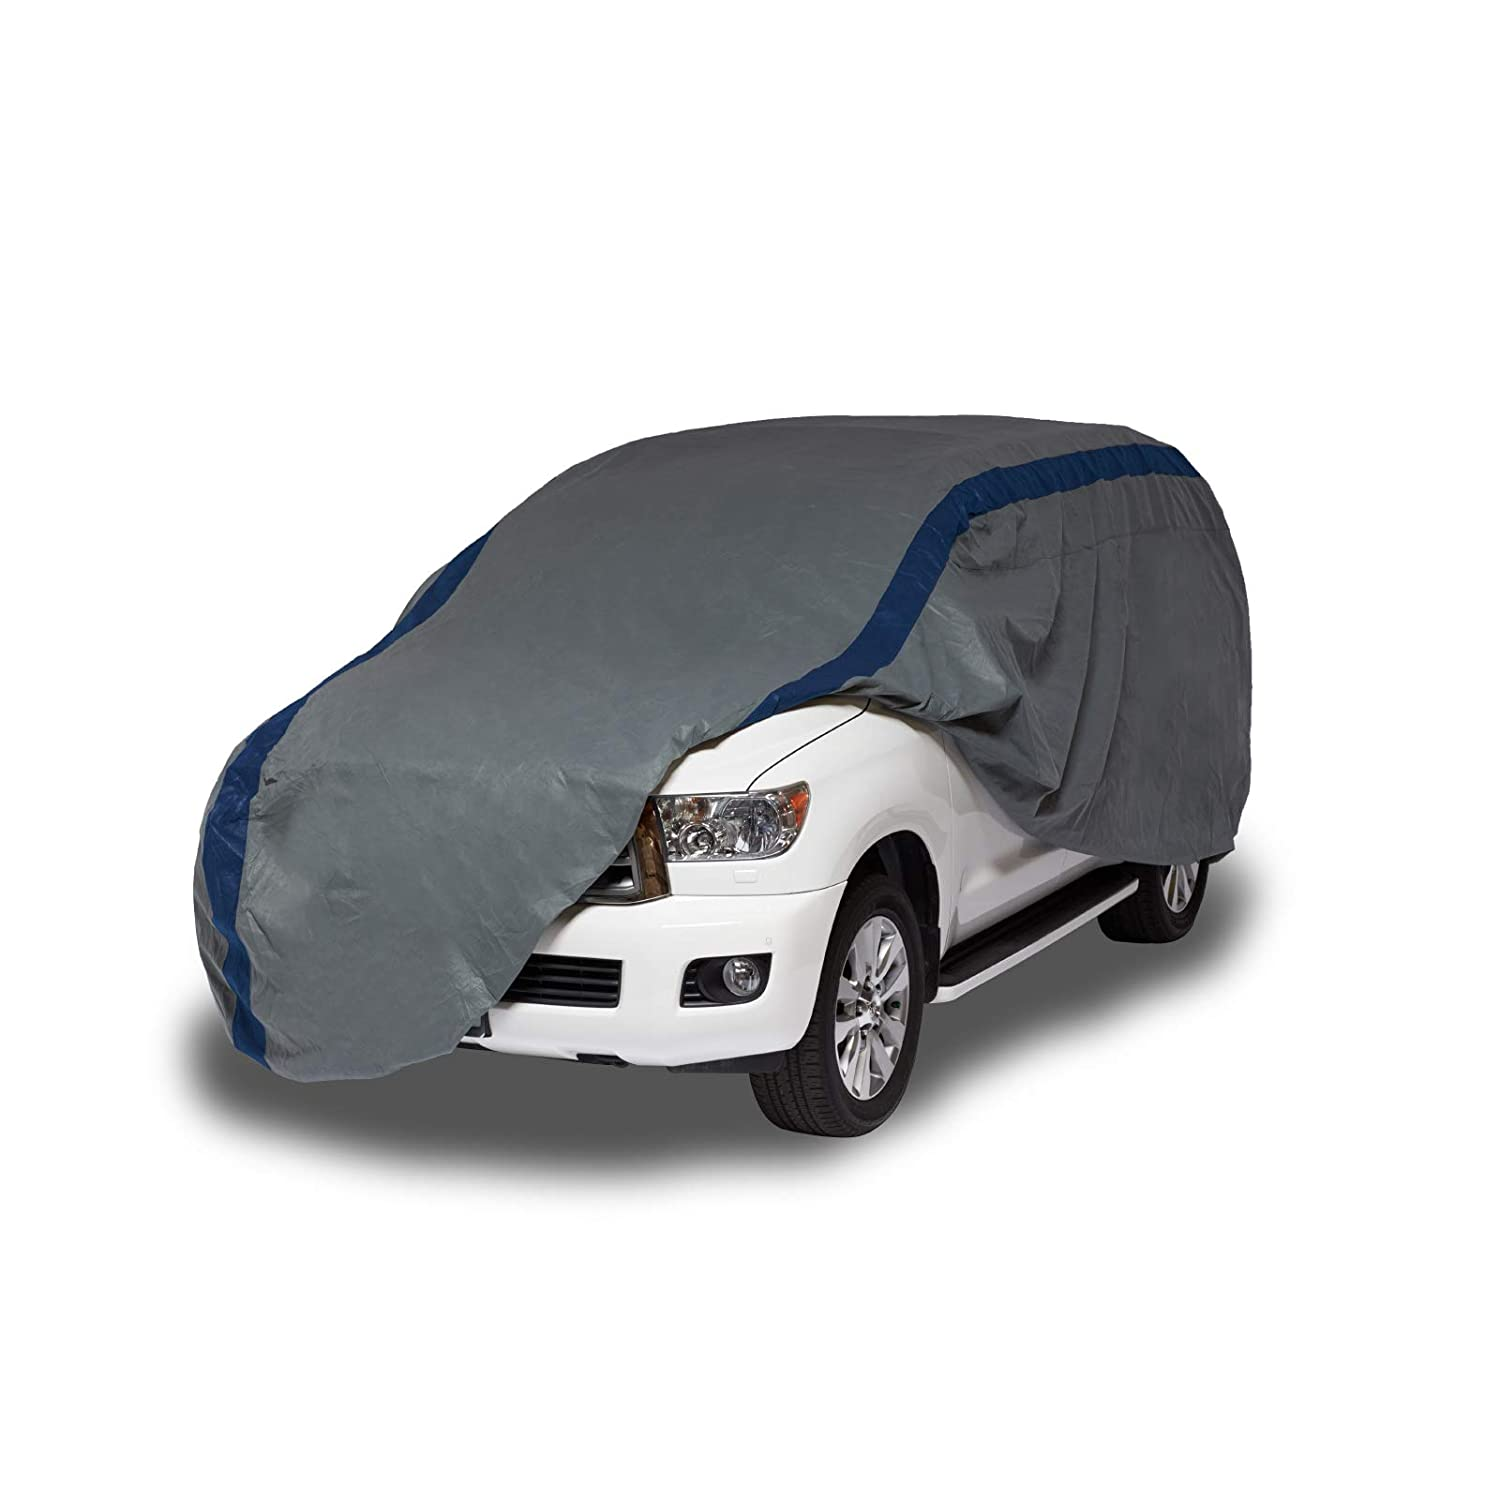 Duck Covers Weather Defender Outdoor SUV/Truck Cover, Limited 4 Year Warranty,  Fits SUVs or Full Size Trucks with Shell or Bed Cap up to 19 ft. 1 in. A3SUV229